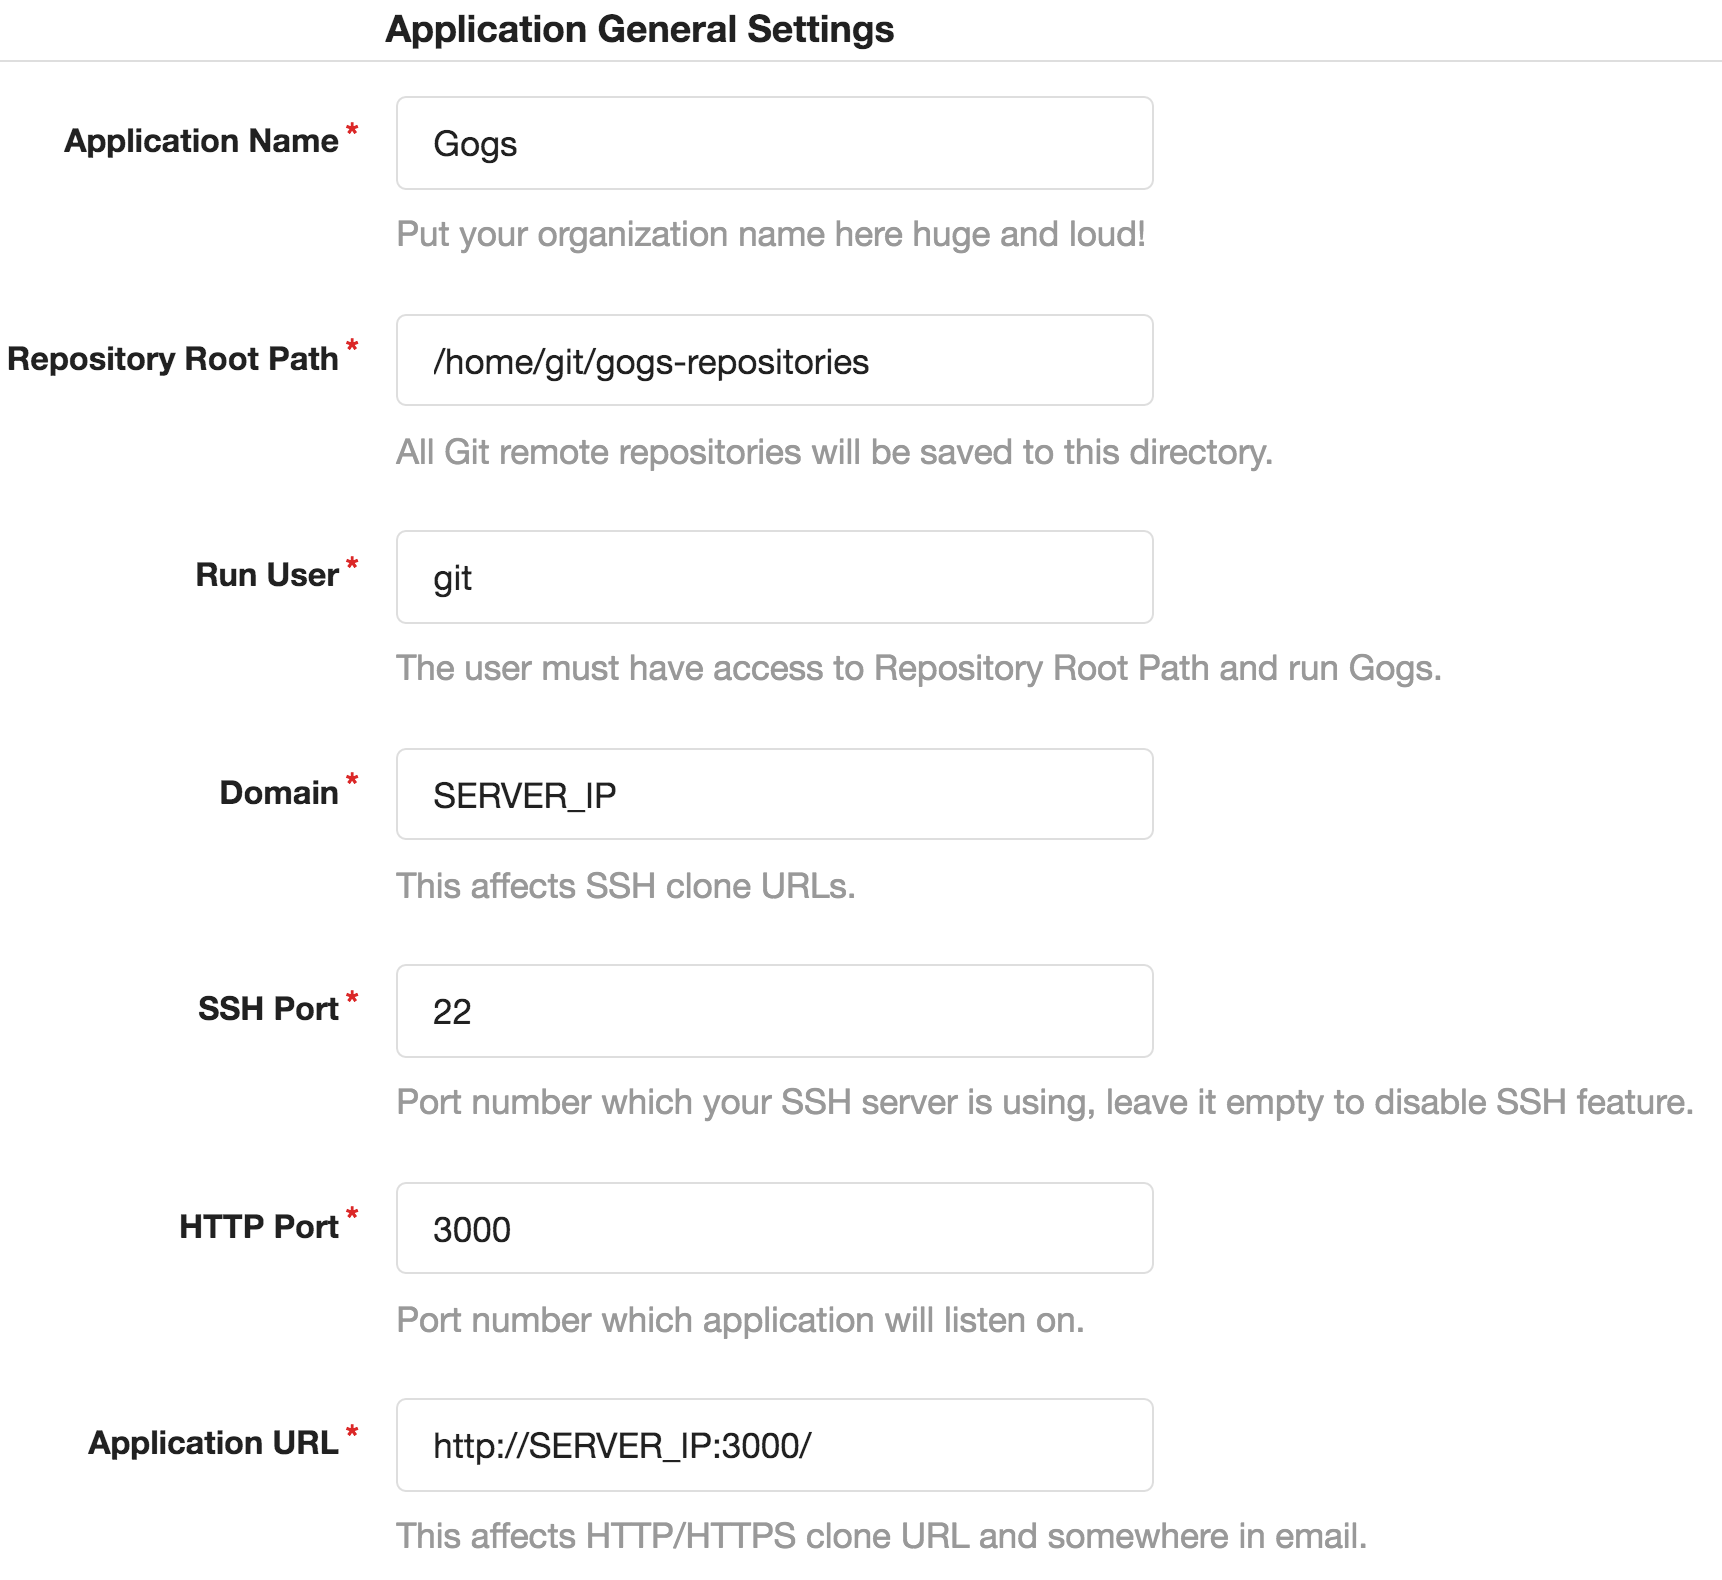 Gogs application settings